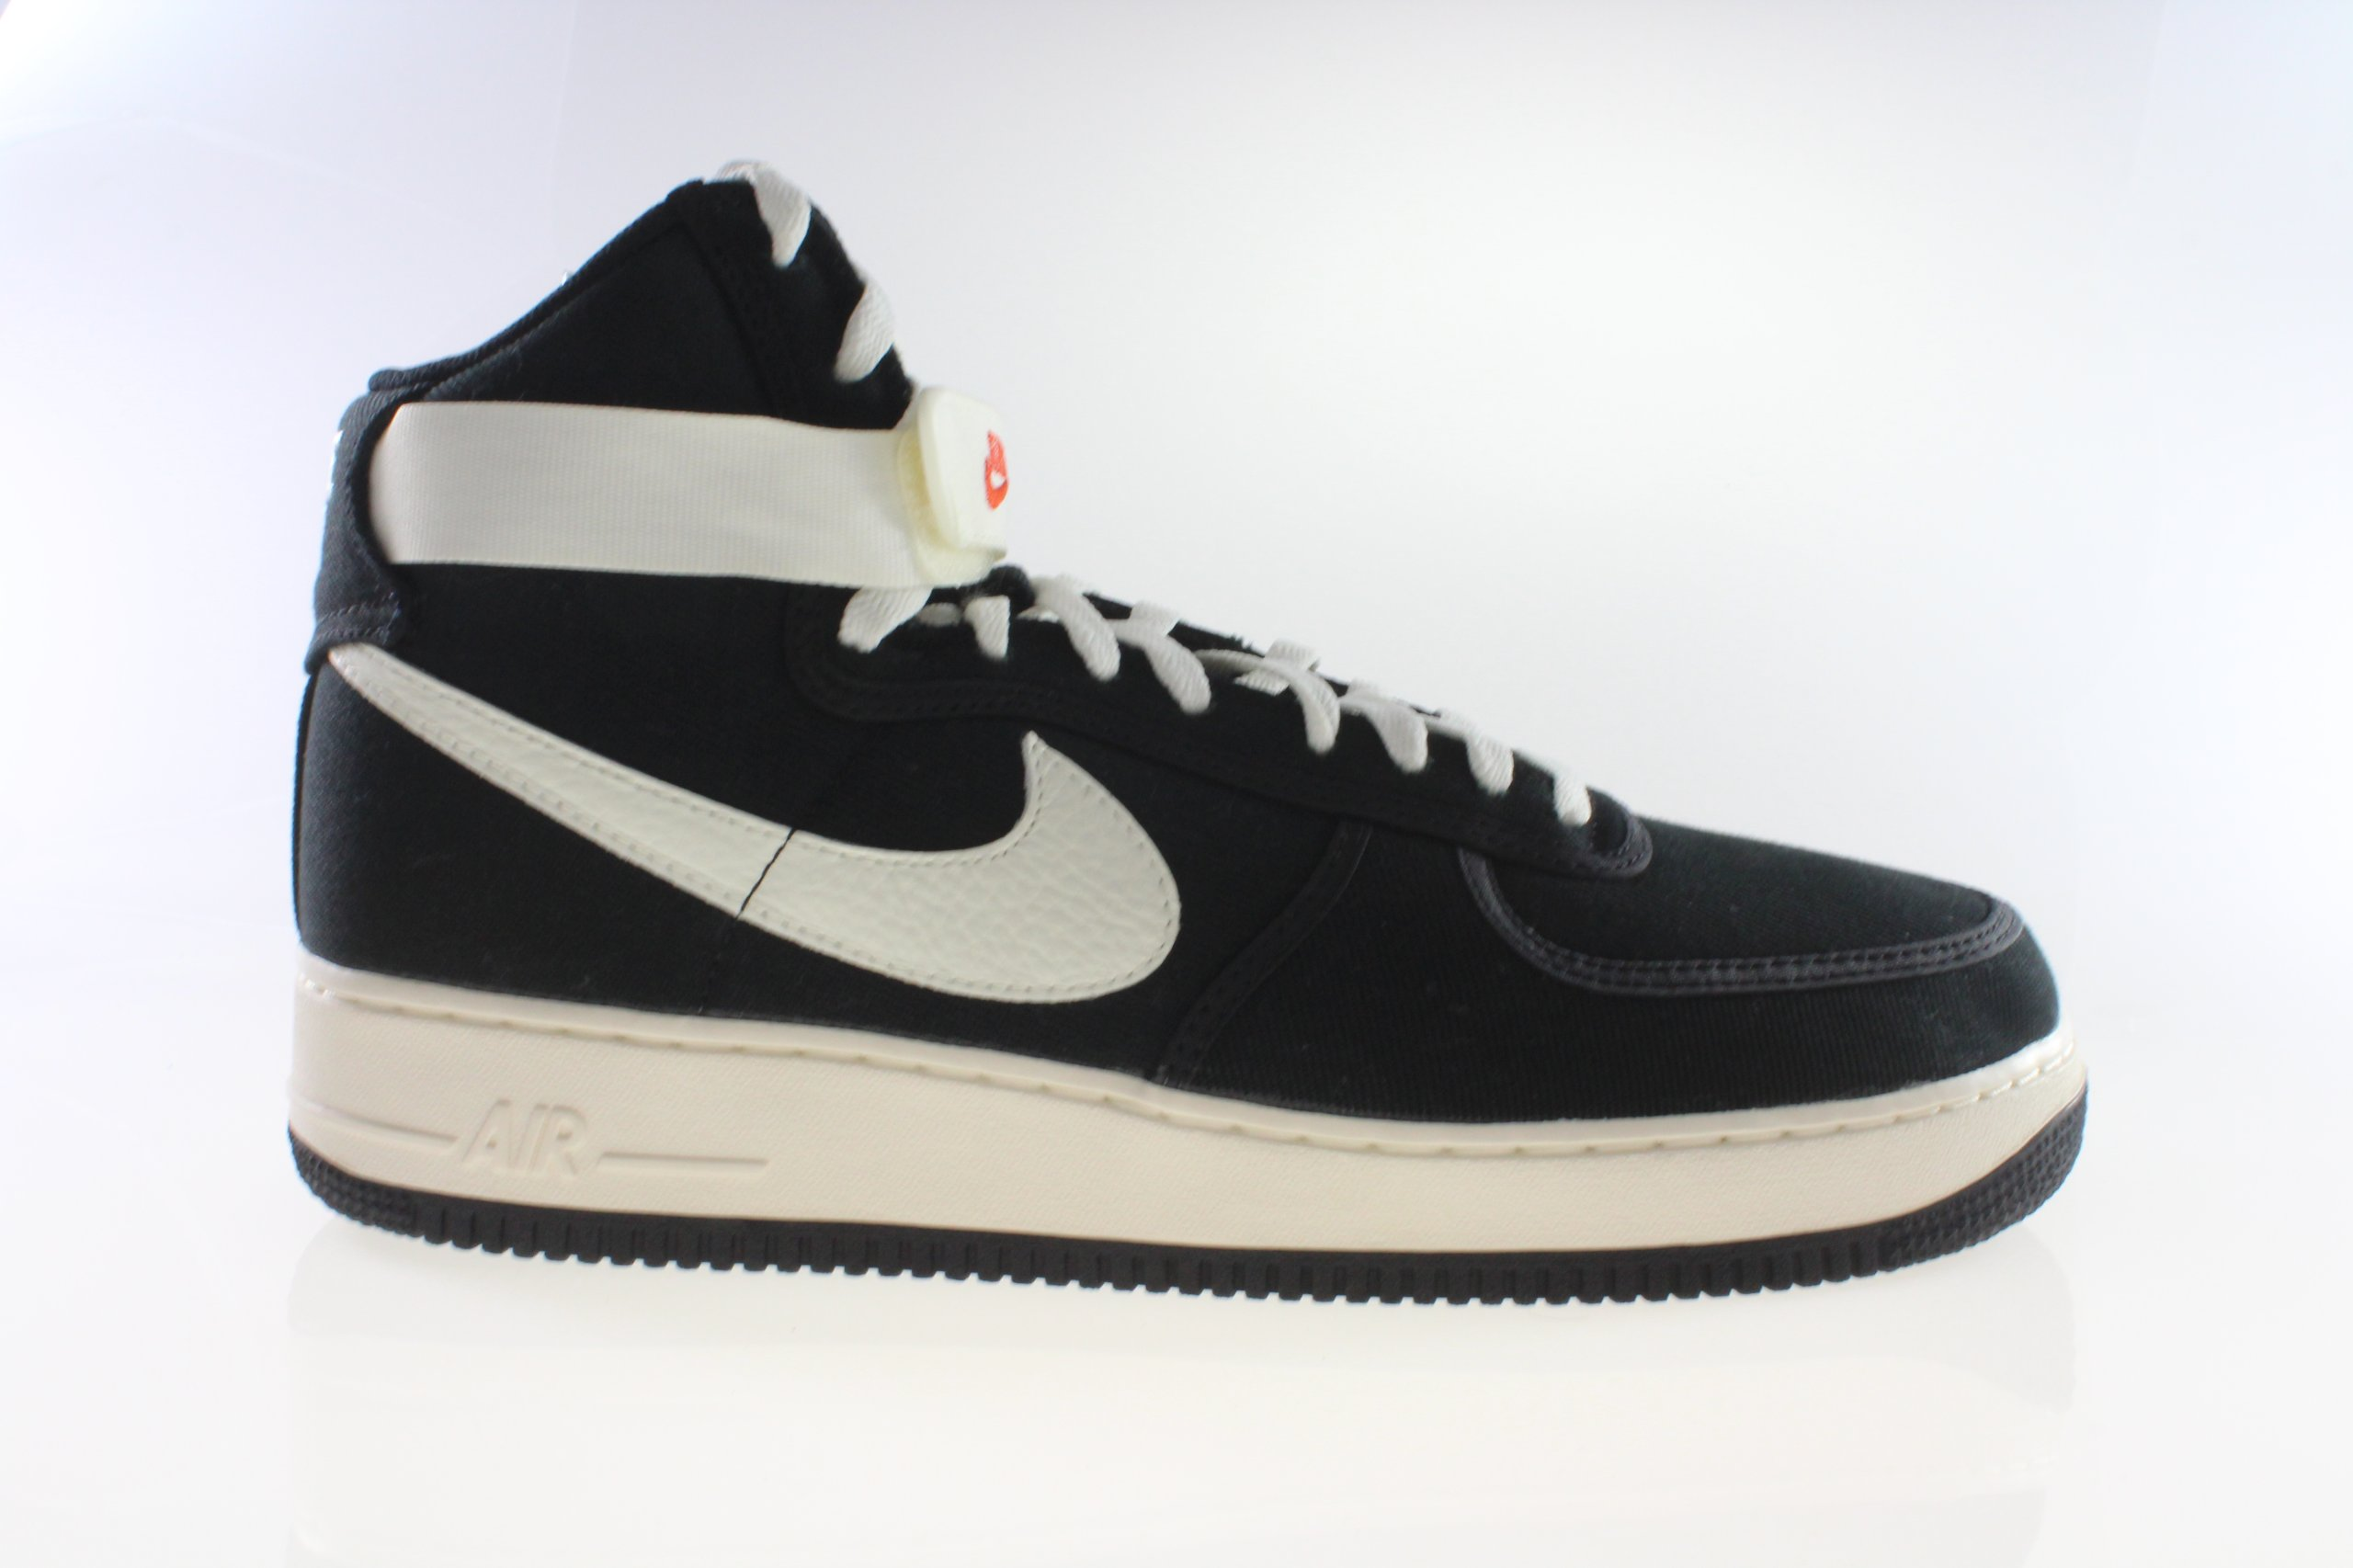 the best attitude d77cf adf9b Buty NIKE AIR FORCE 1 HIGH RETRO r. 46 Jordan Kd - 7355259459 ...